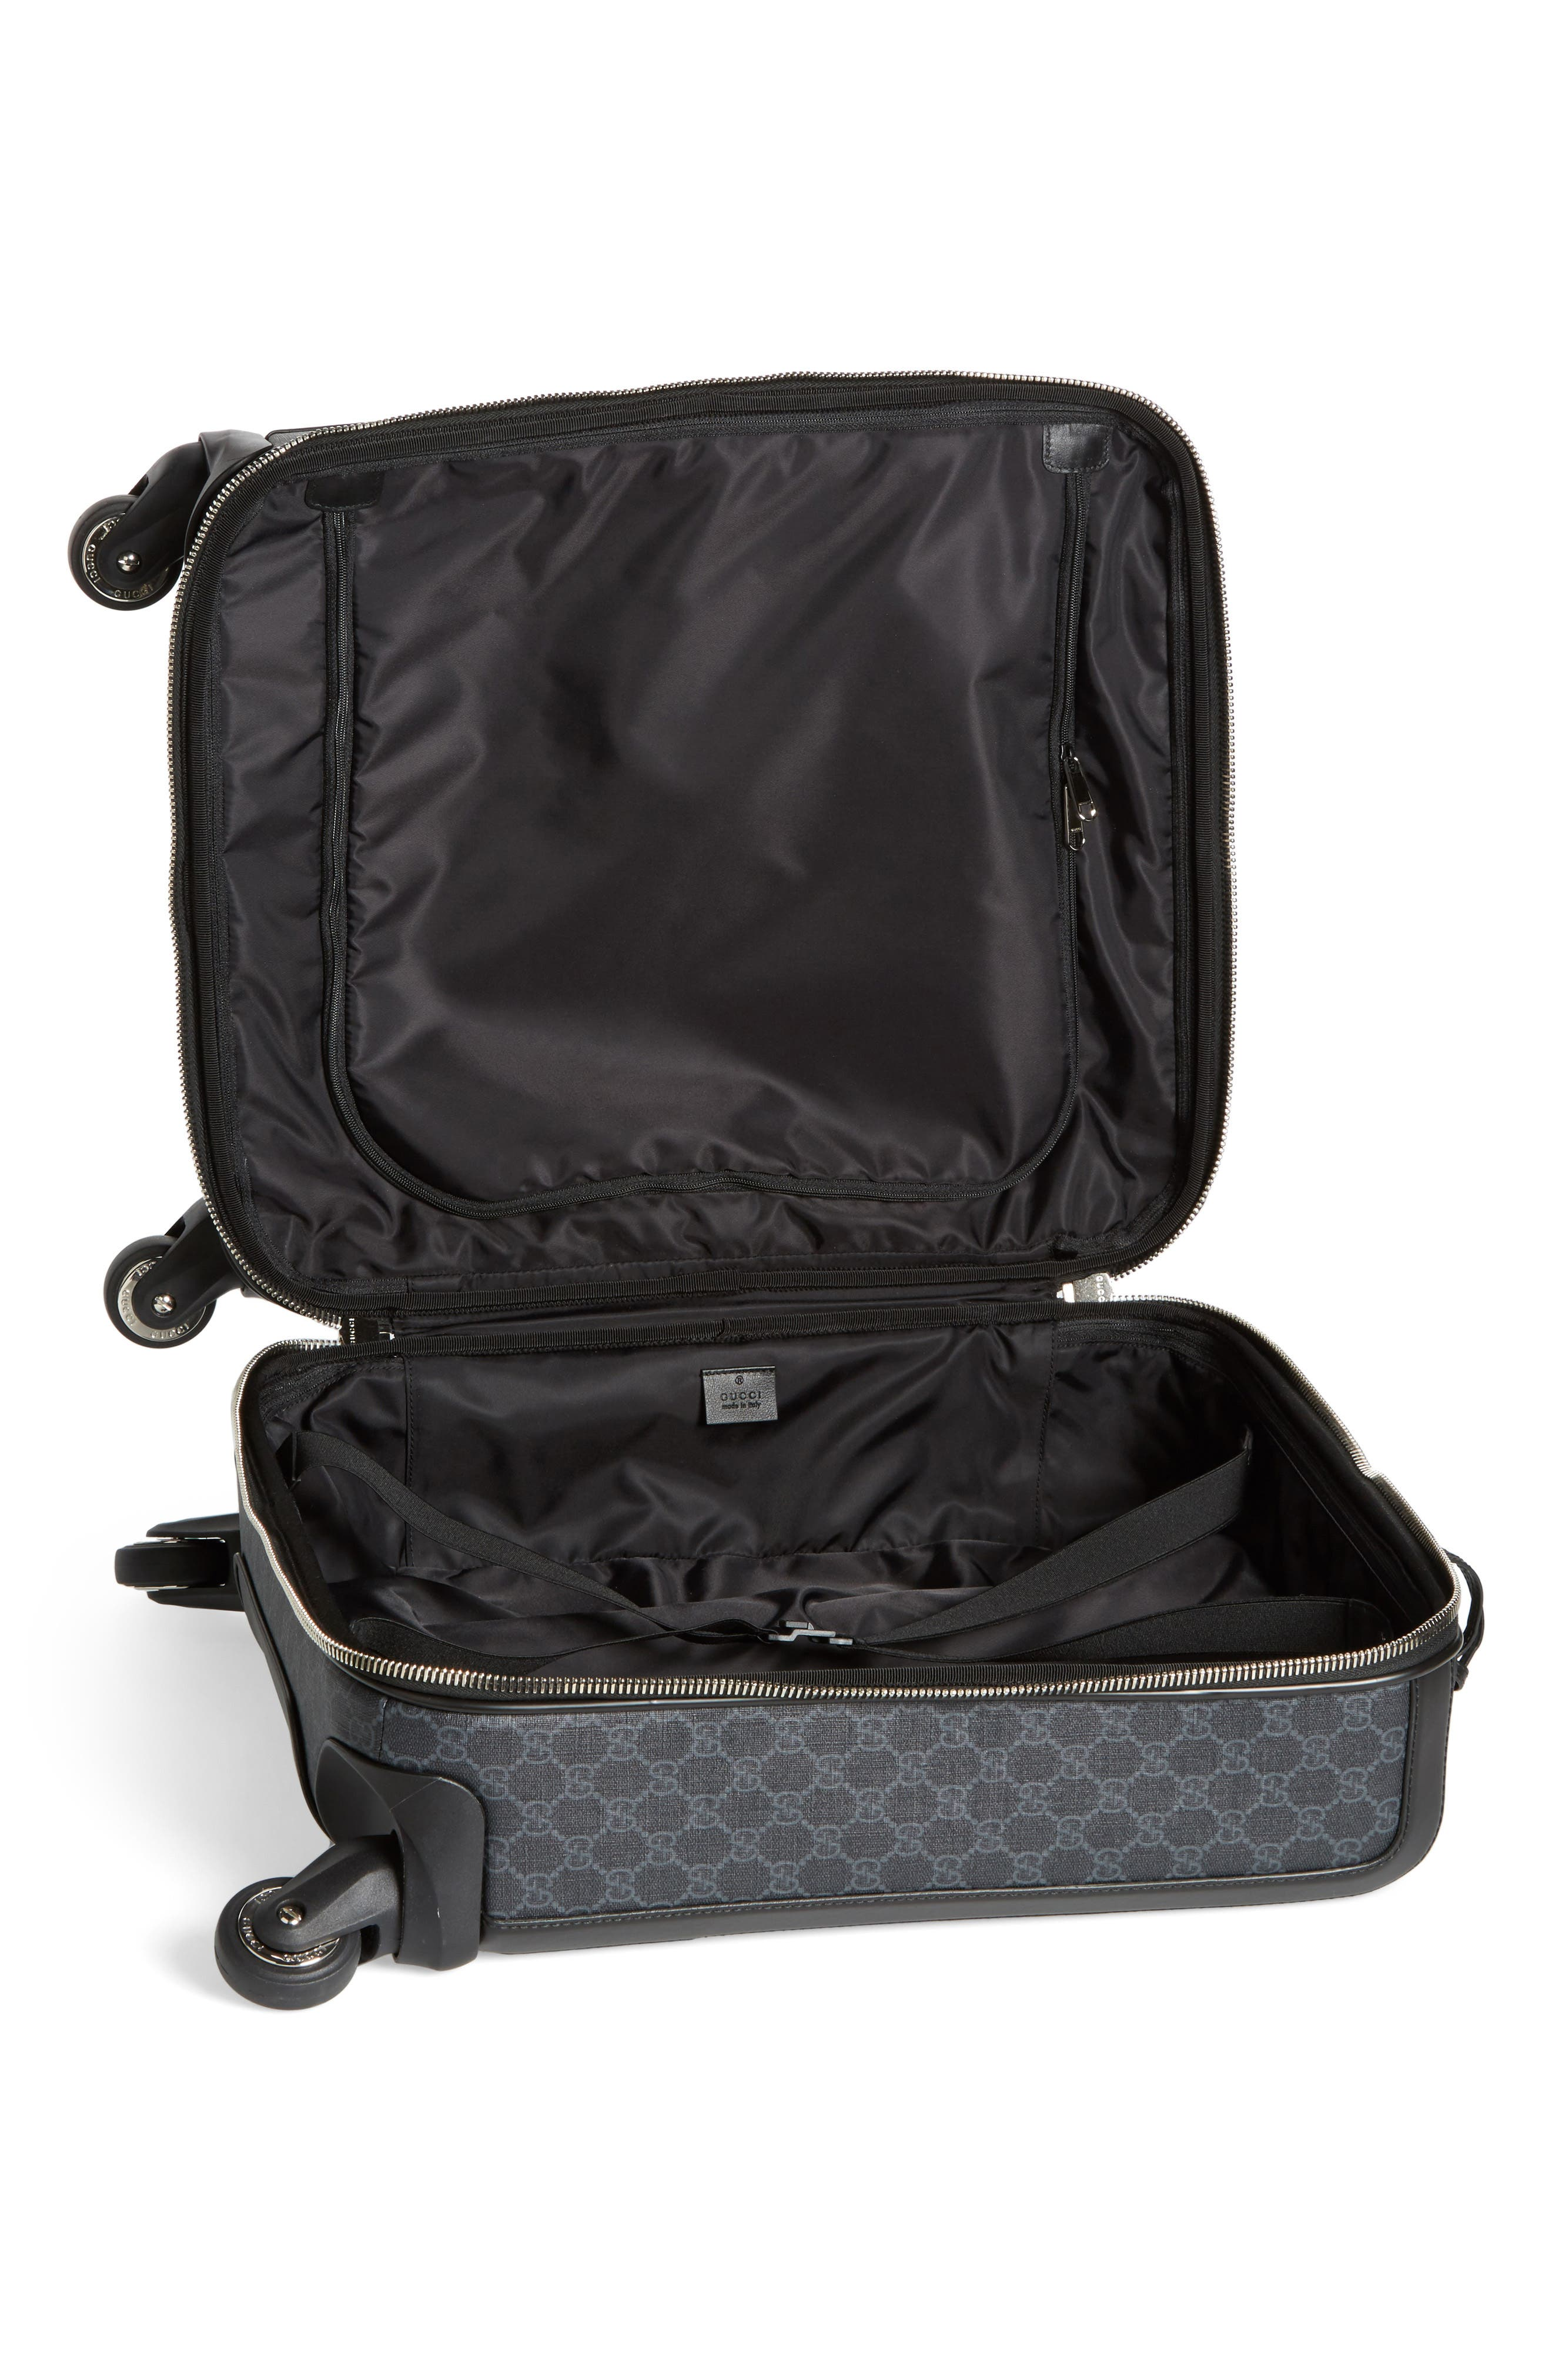 Gran Turismo Carry-On,                             Alternate thumbnail 2, color,                             Black